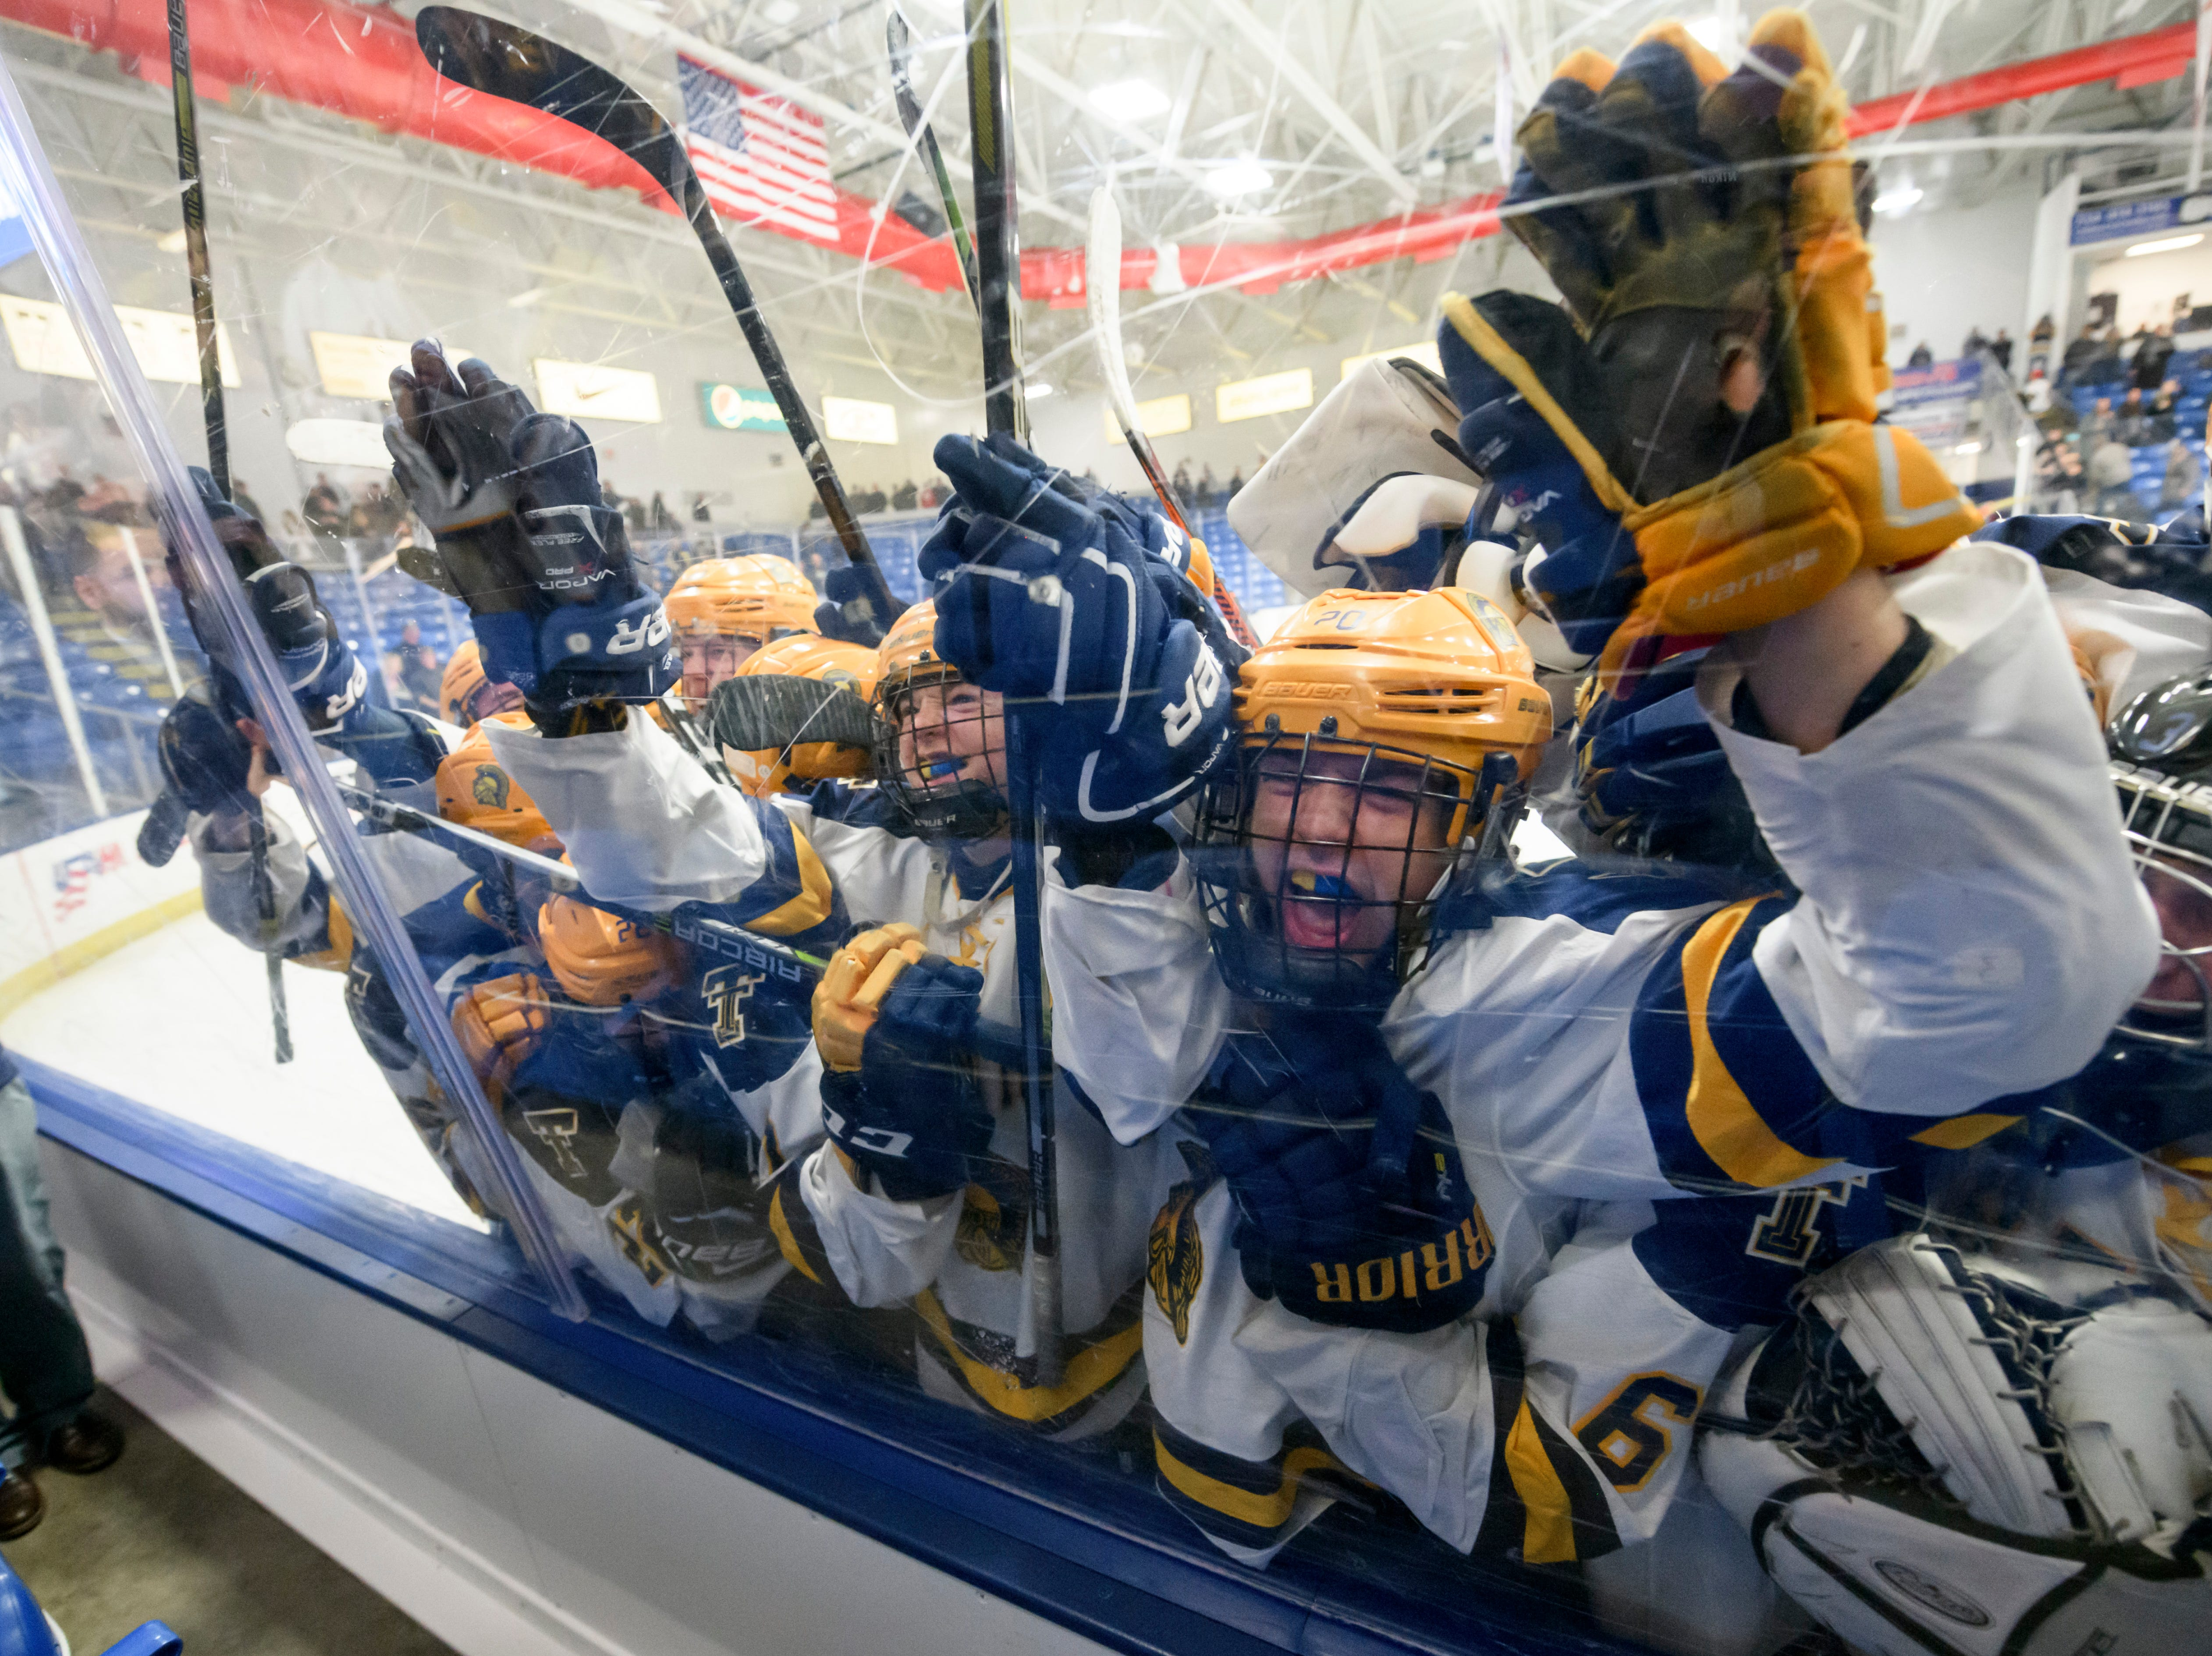 Trenton High School hockey players slam into the plexiglass barrier between them and their fans after defeating Birmingham Brother Rice 3-2 in the  MHSAA hockey semi-finals at USA Hockey Arena, in Plymouth on March 8, 2018.